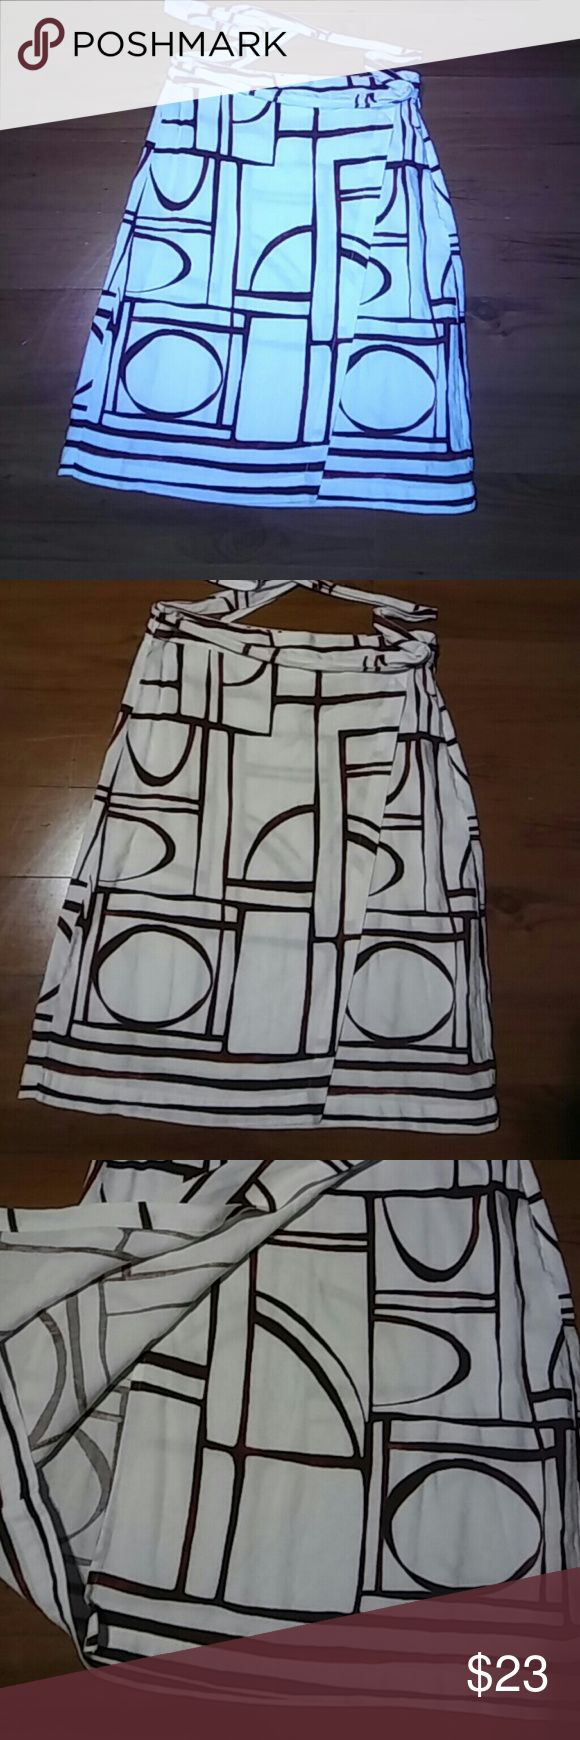 NWT Loft Skirt Maroon and white wrap skirt. 52% linen and 48% rayon. Machine wash cold. Very cute and modern. LOFT Skirts Midi